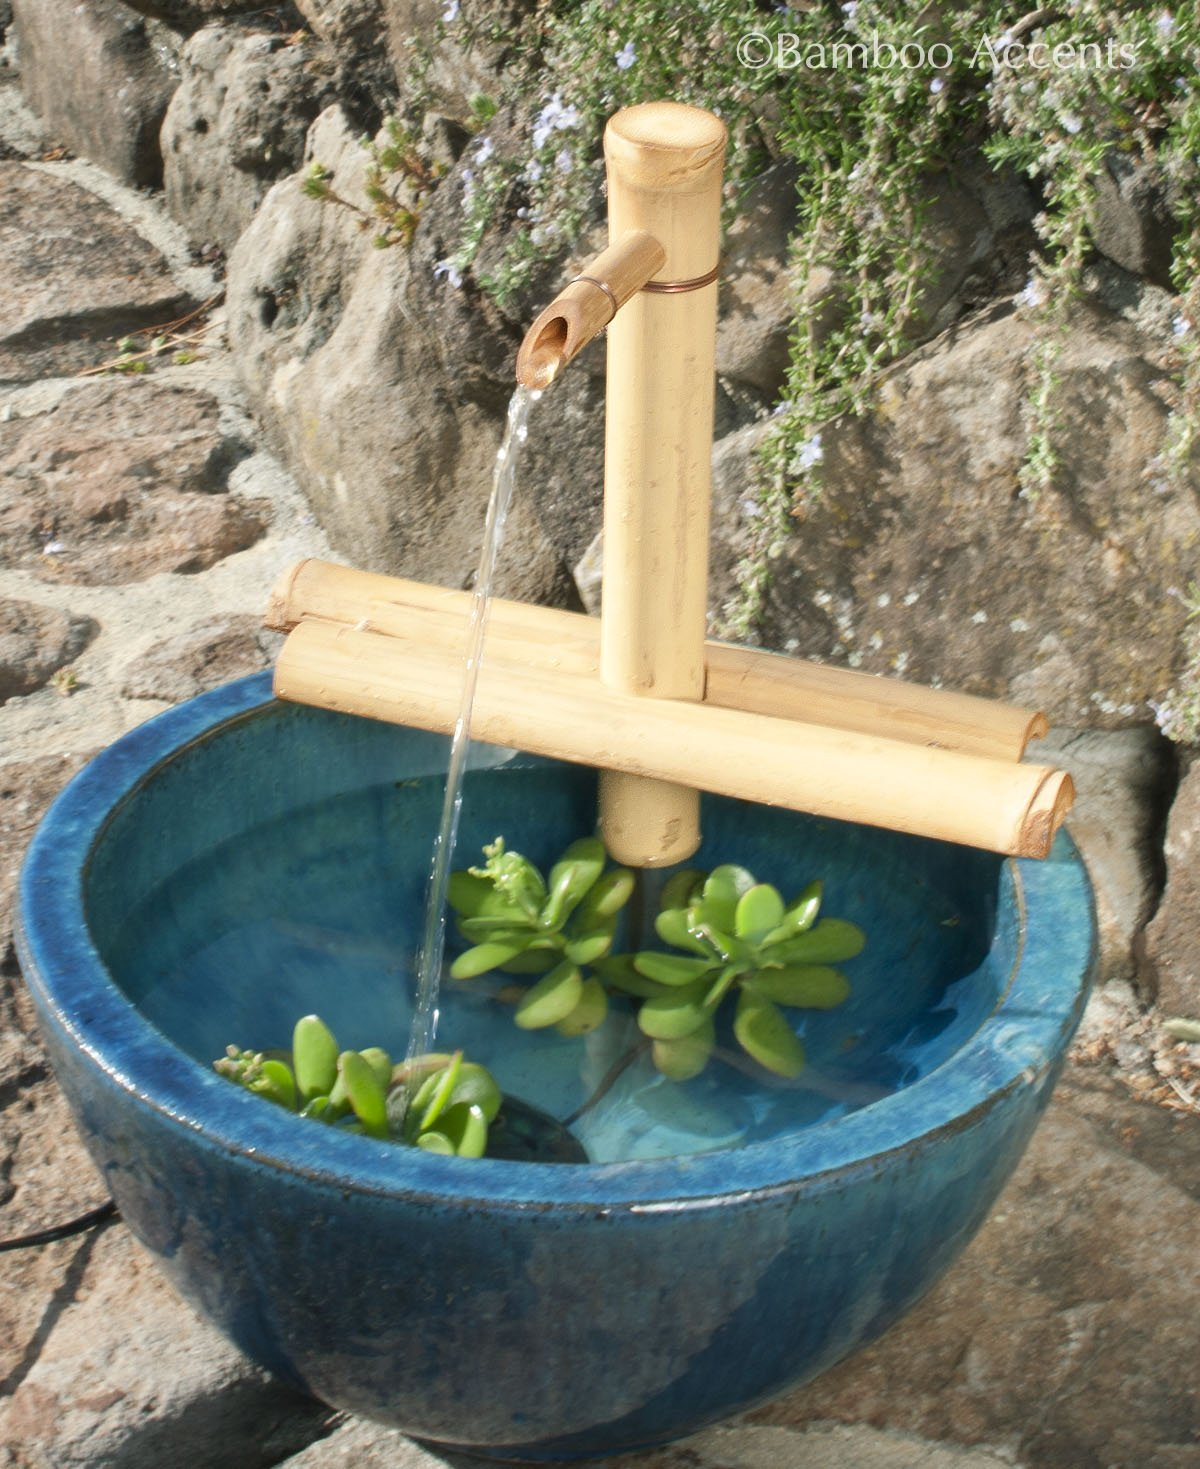 "Bamboo Accents 12"" Adjustable Spout and Pump Kit"